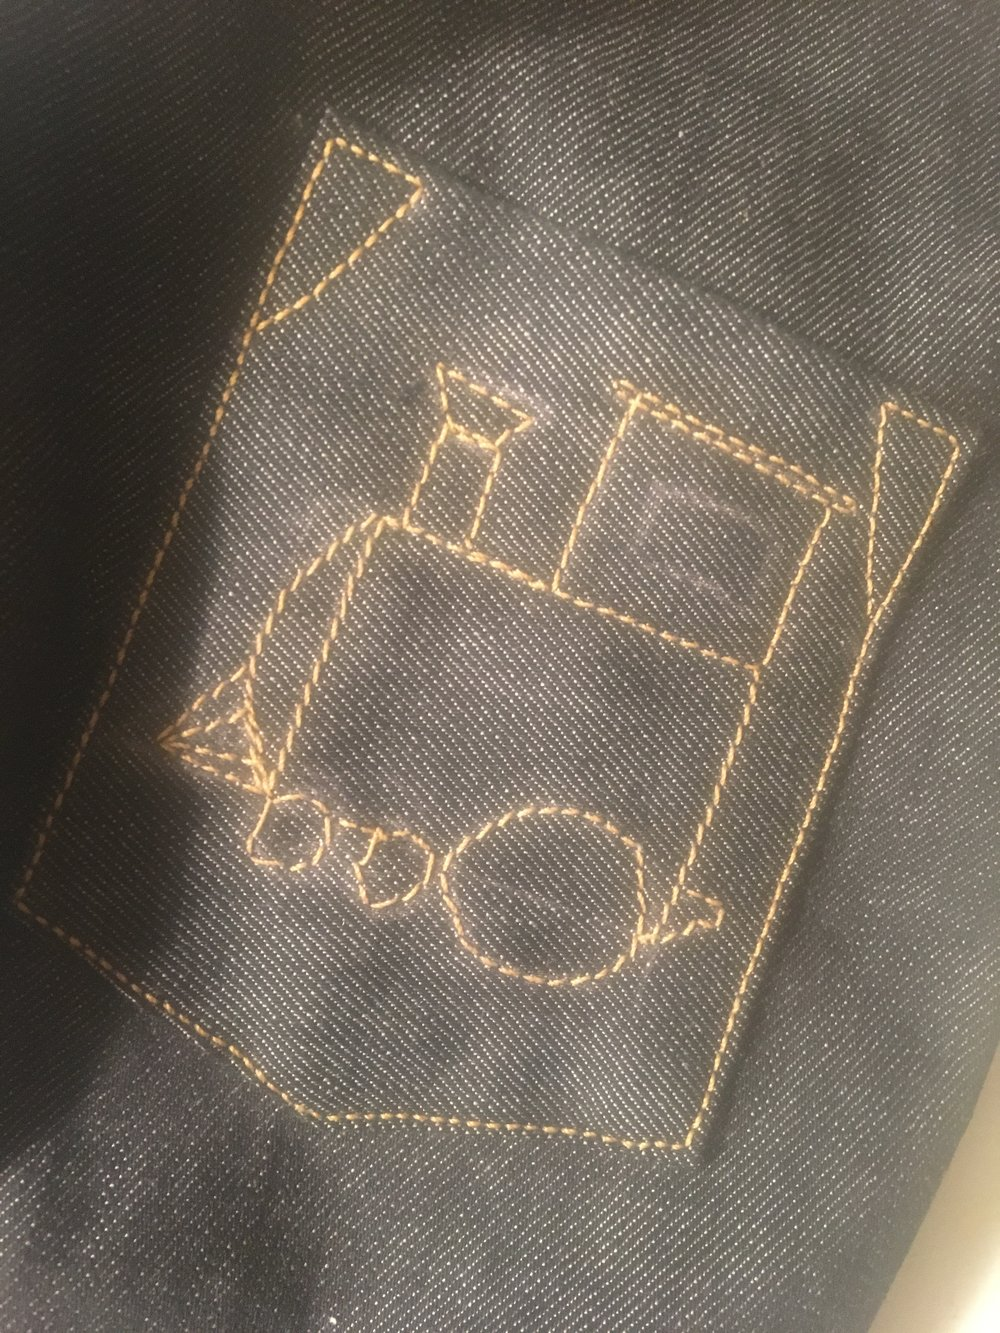 back pocket topstitching which includes a simple train picture and triangle top reinforcements along with edgestitching